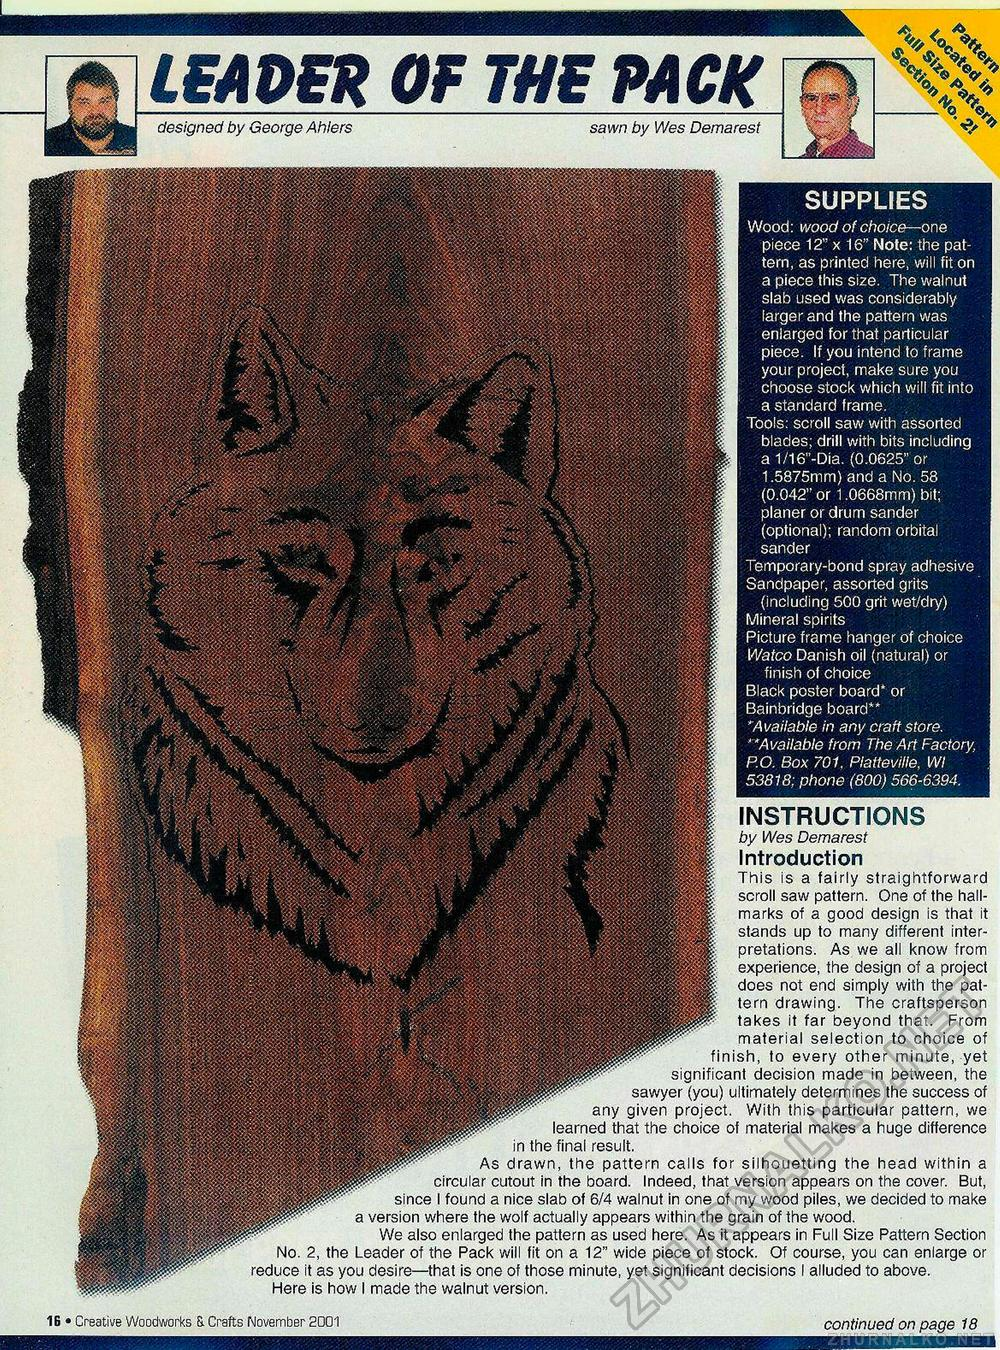 Creative Woodworks & crafts 2001-11, страница 16